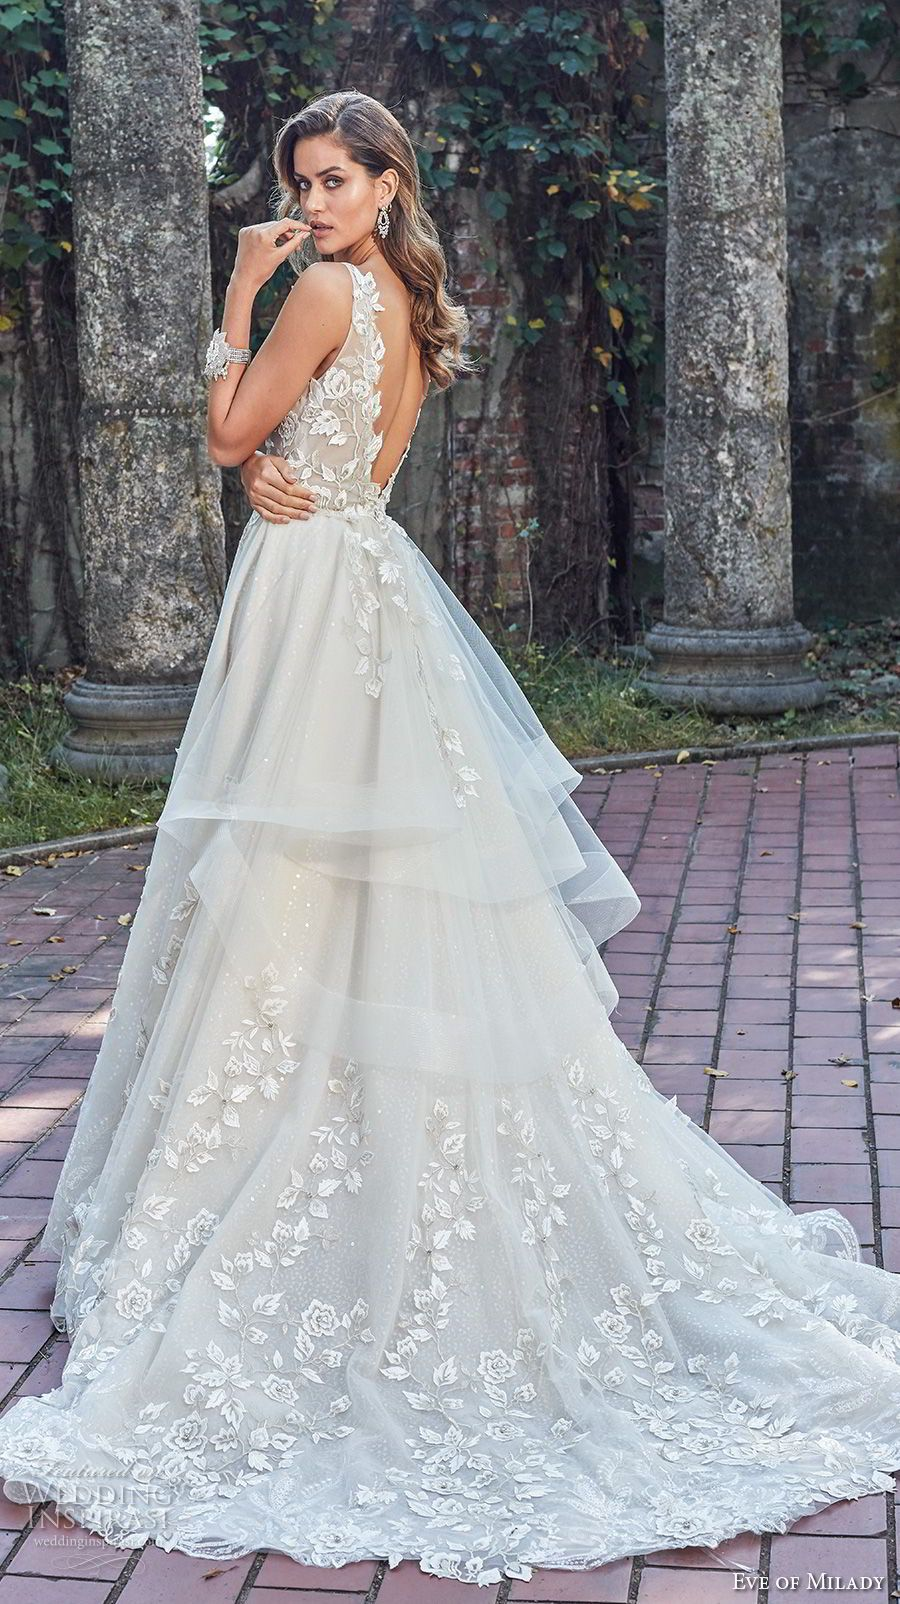 dcadcde49f3 eve of milady spring 2018 bridal sleeveless deep v neck full embellishment  romantic princess a line wedding dress open back chapel train (2) bv -- Eve  of ...